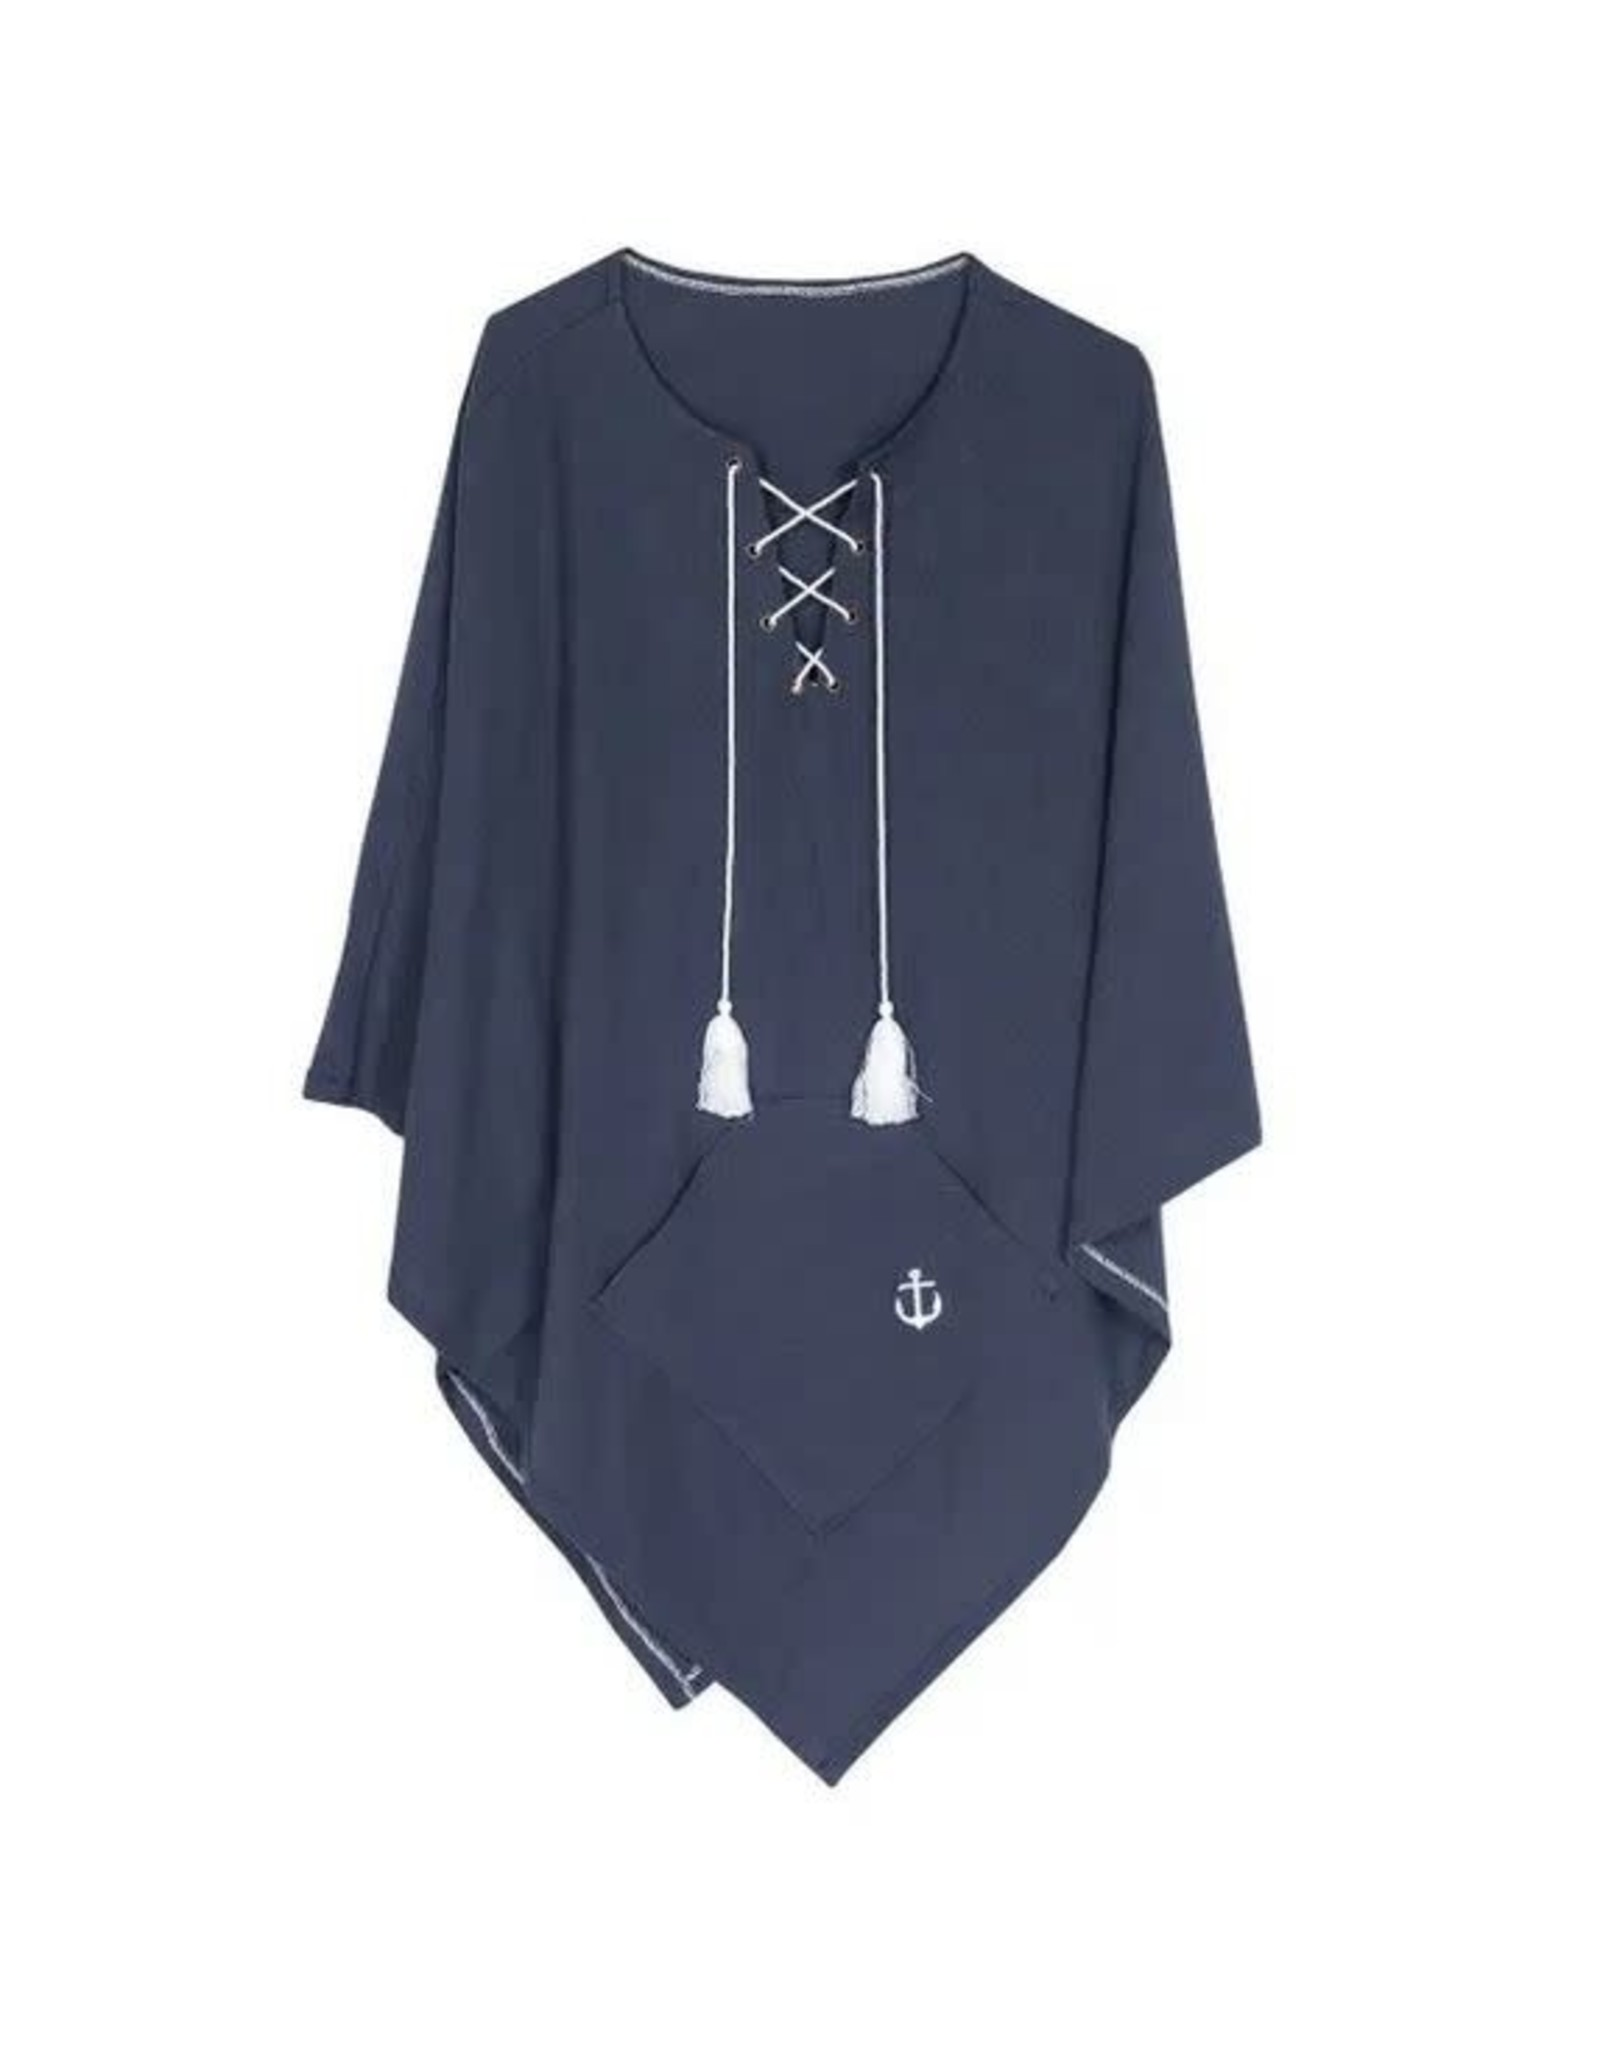 PARADE STREET PRODUCTS ONE SIZE POCKET ANCHOR PONCHO